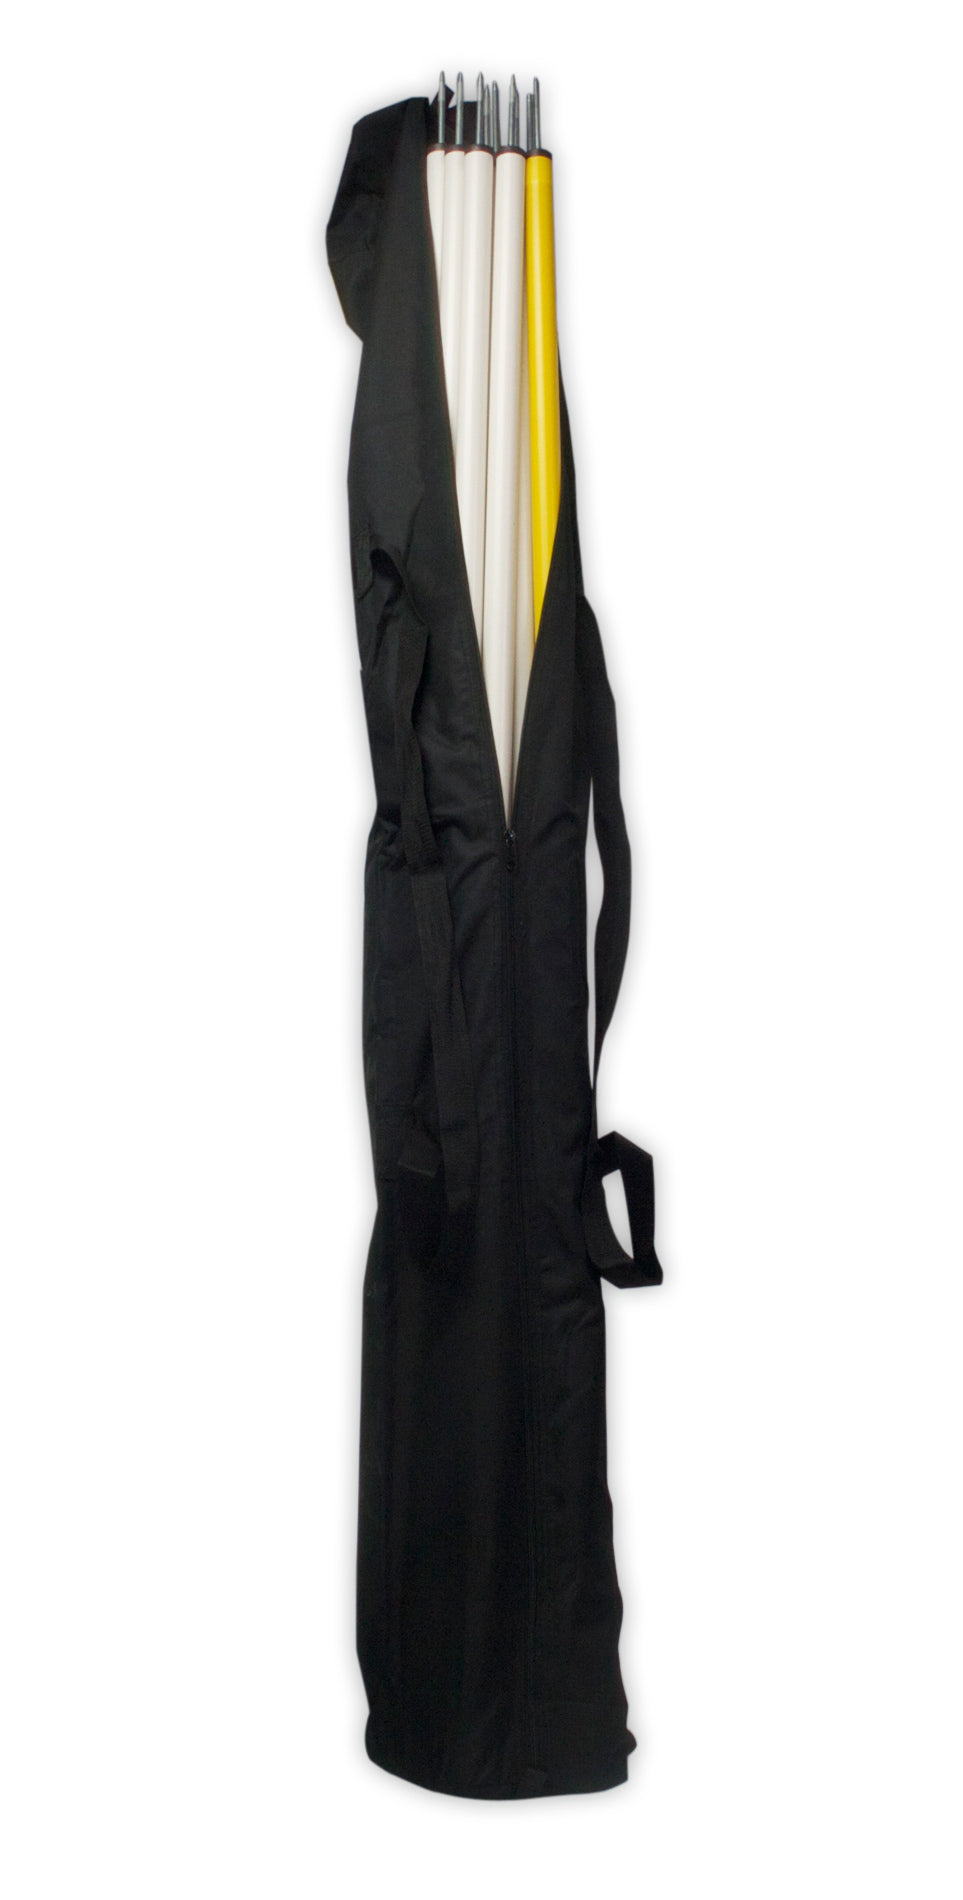 Agility Pole Bag